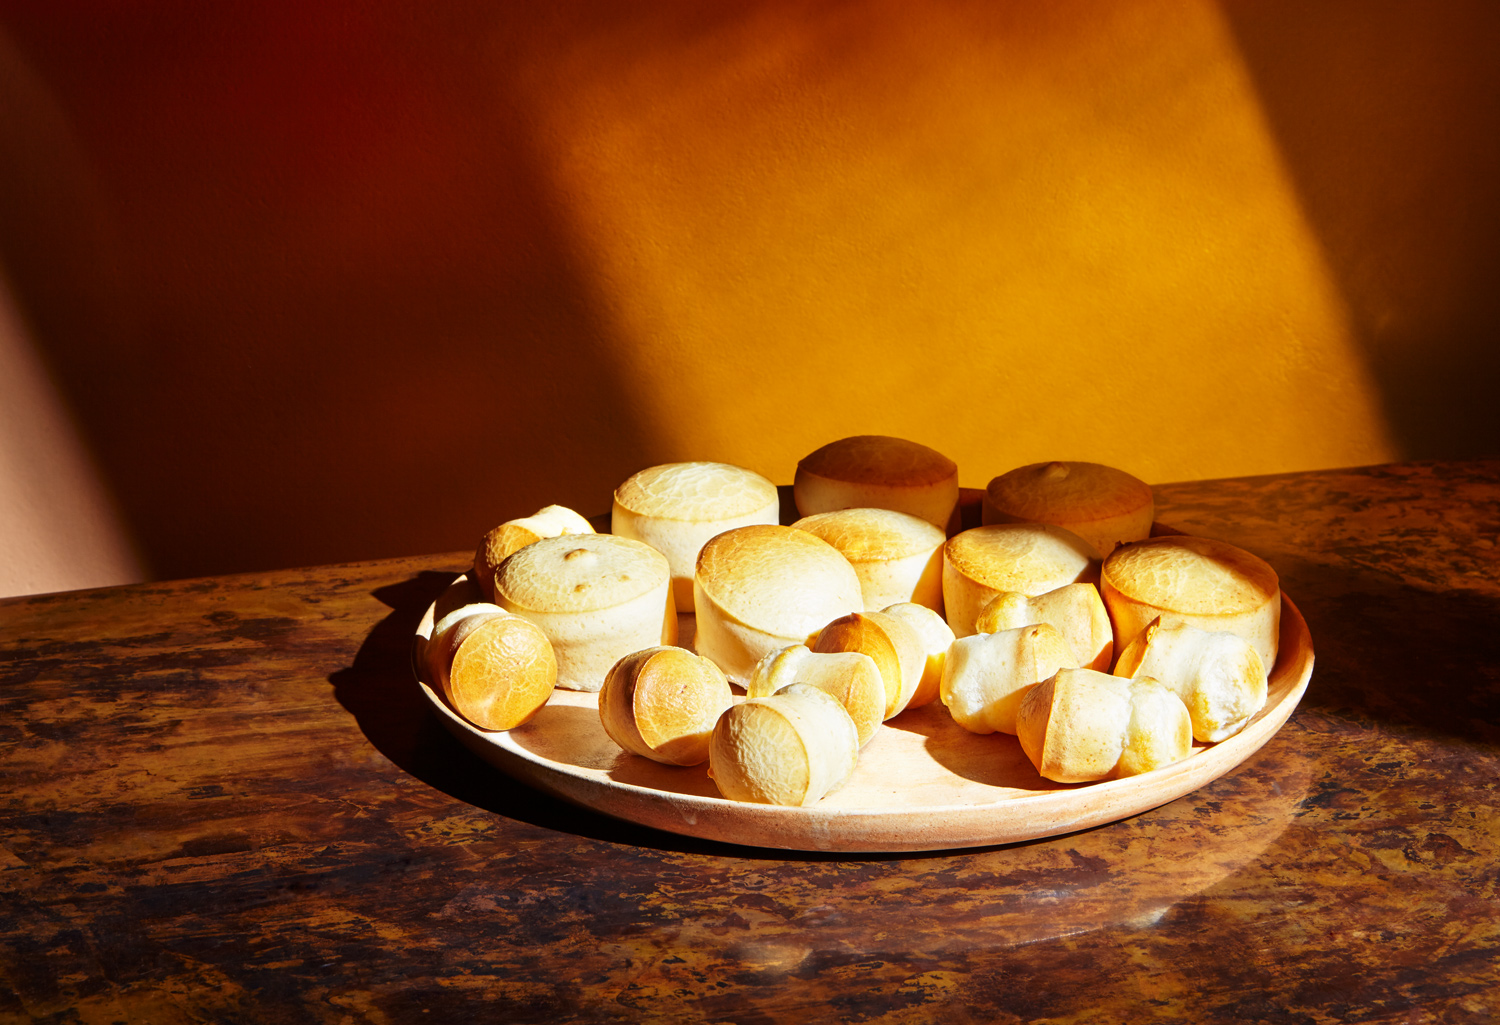 katie hammond photography buns and buns still life food cheese buns